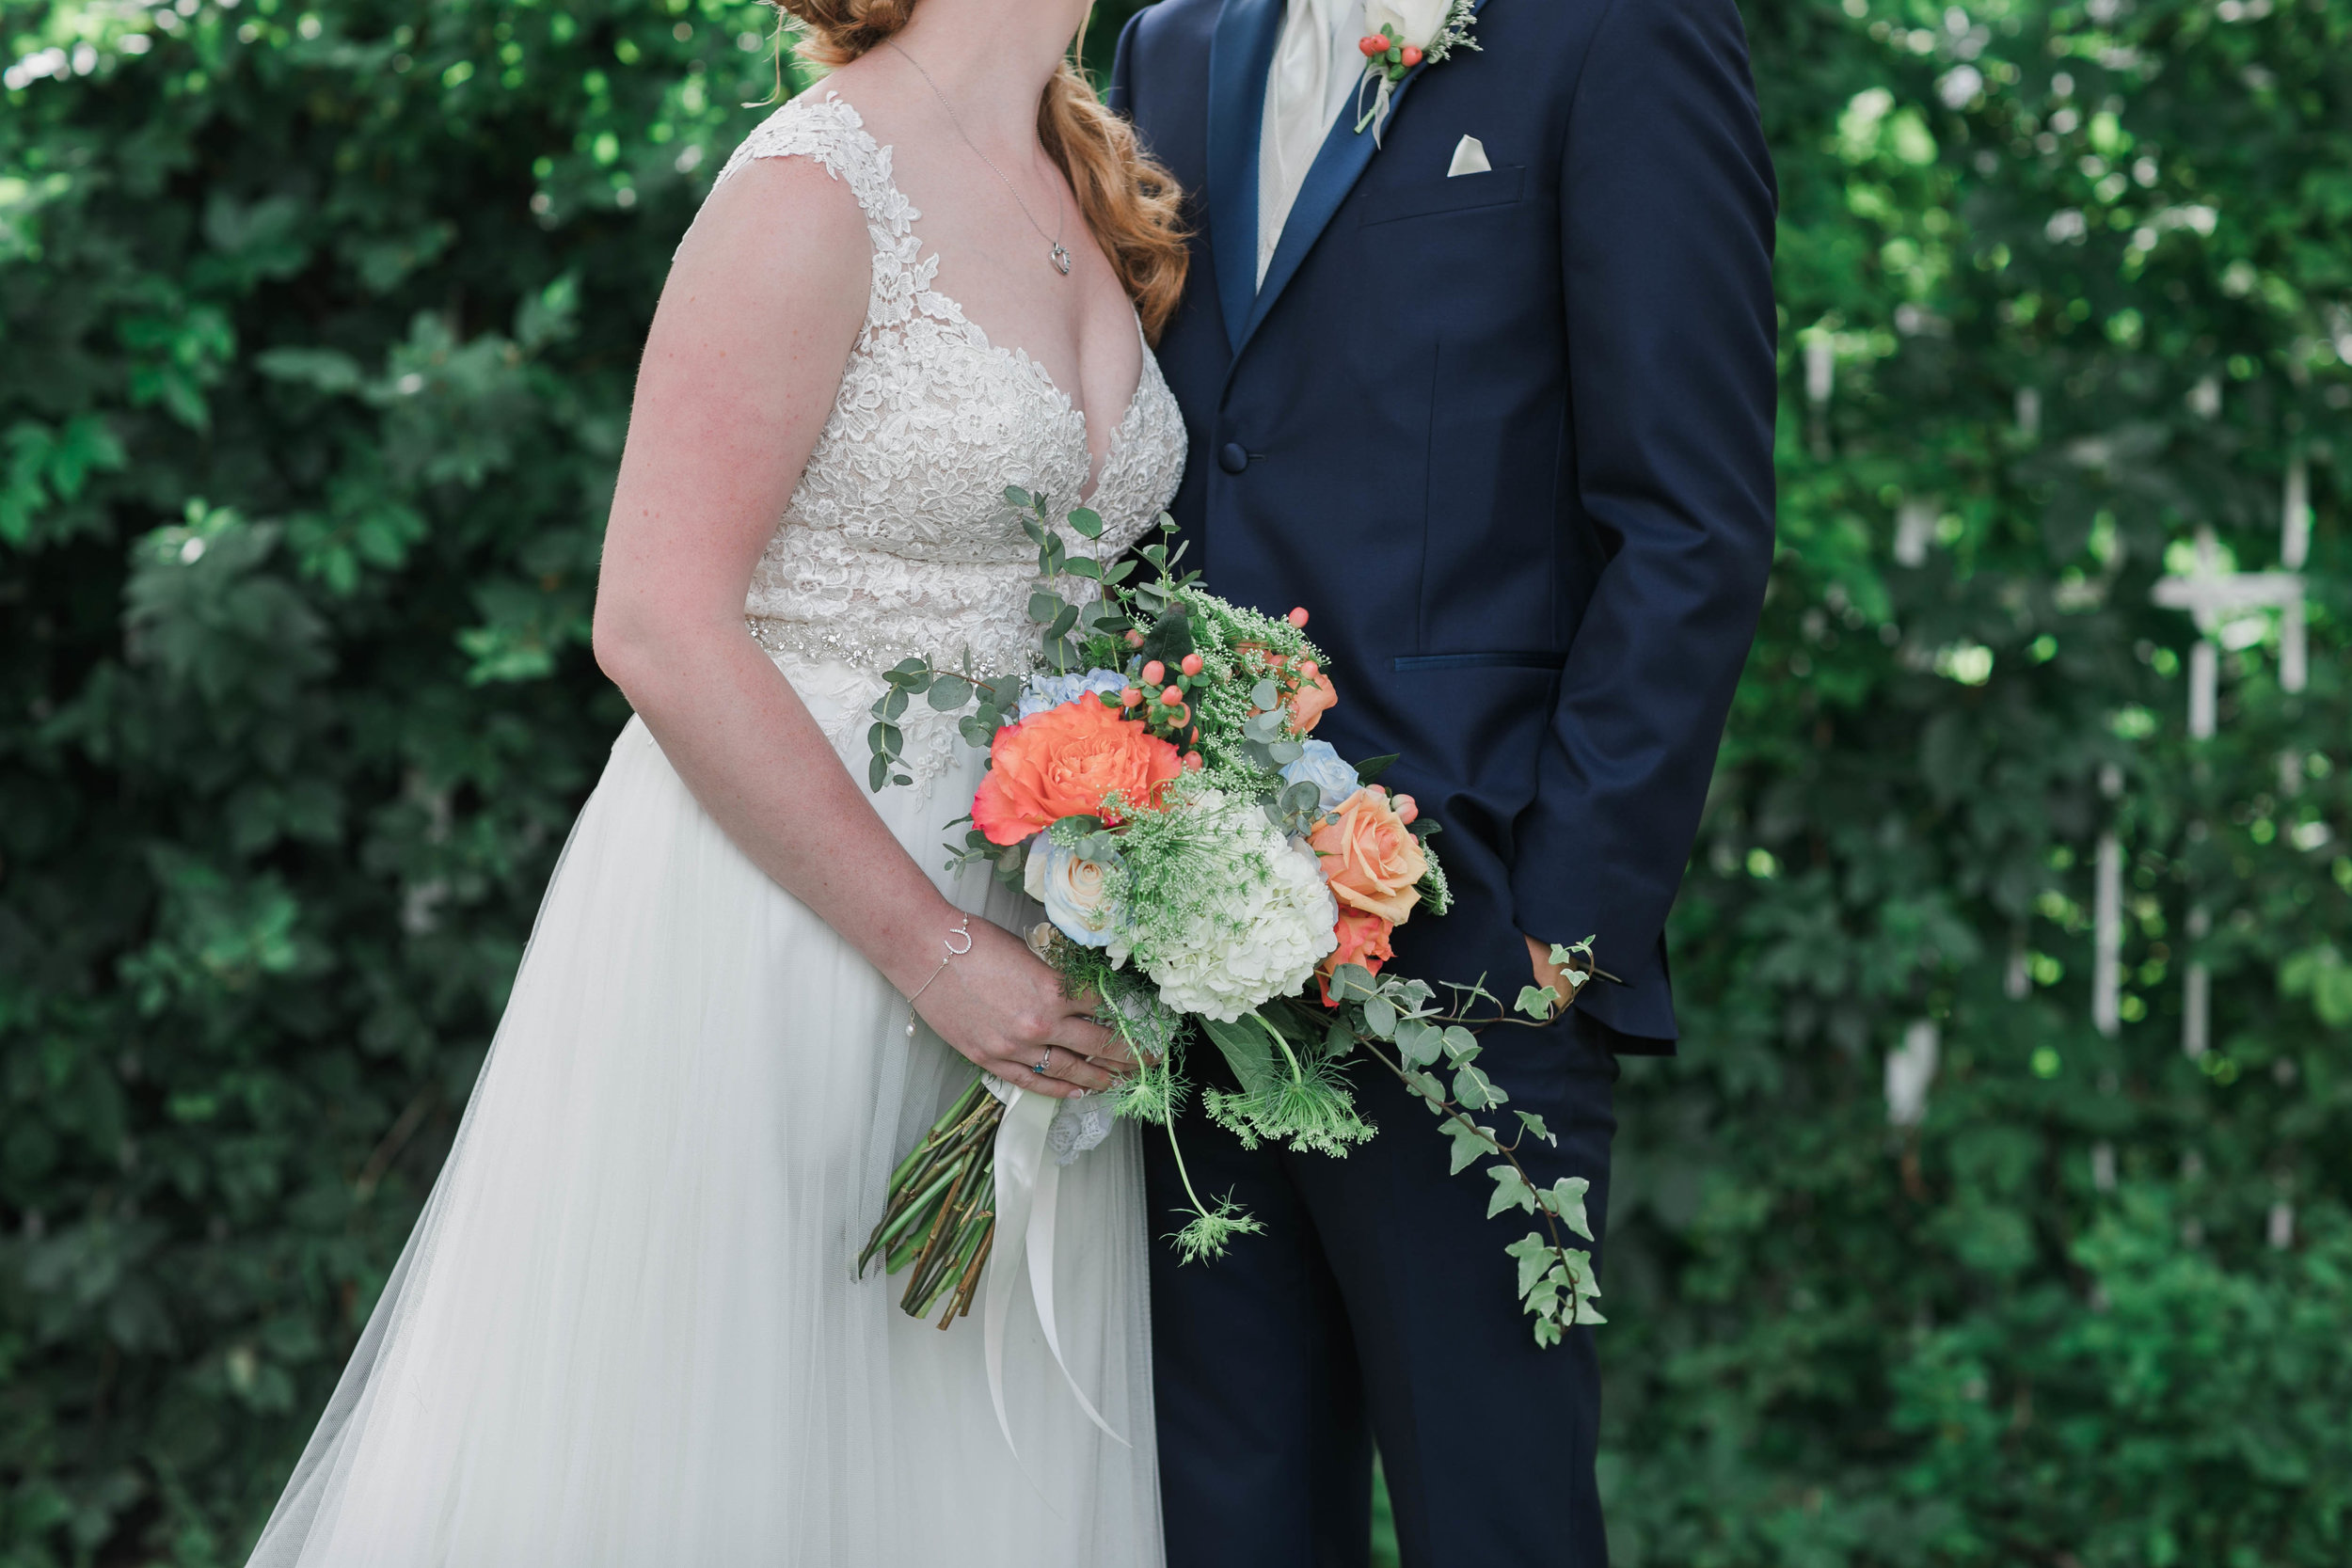 Morgan Bress Photography | Lindsay Wedding Photographer | Kawartha Lakes Wedding Photographer | Ontario Wedding Photographer |  Apple Orchard Wedding